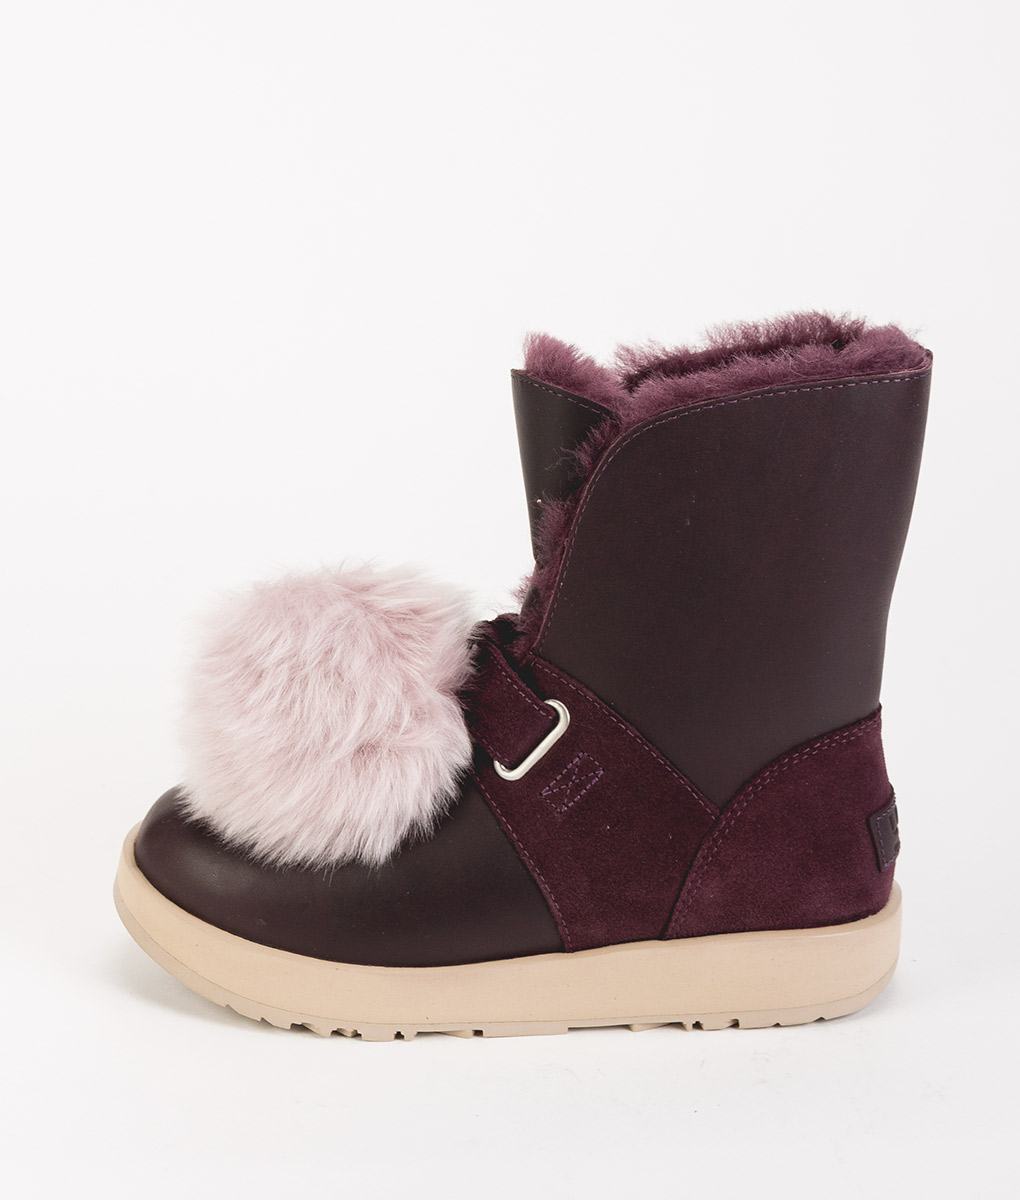 UGG Women Ankle Boots 1018217 ISLEY WATERPROOF, Port 269.99